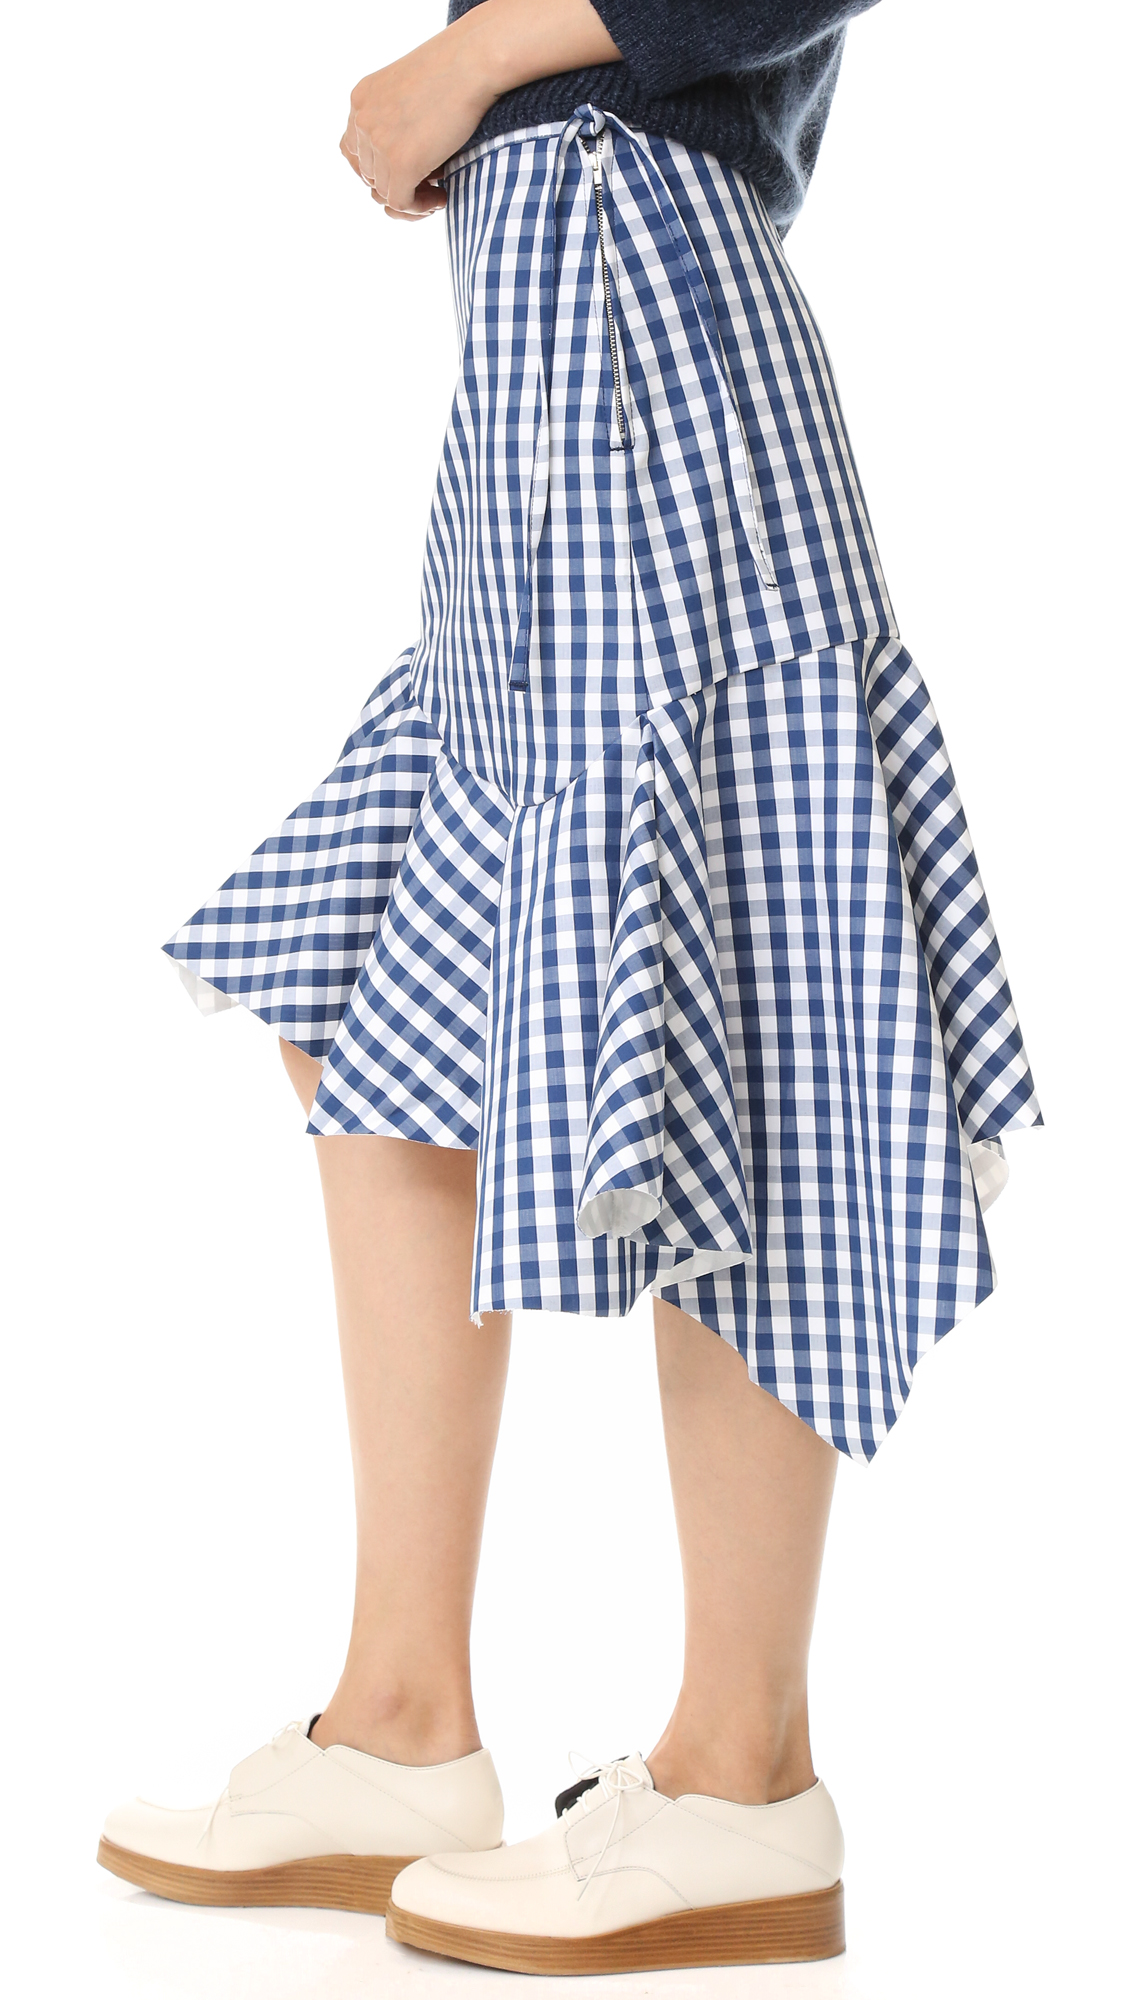 905d19968c Marques Almeida Gingham Skirt | SHOPBOP